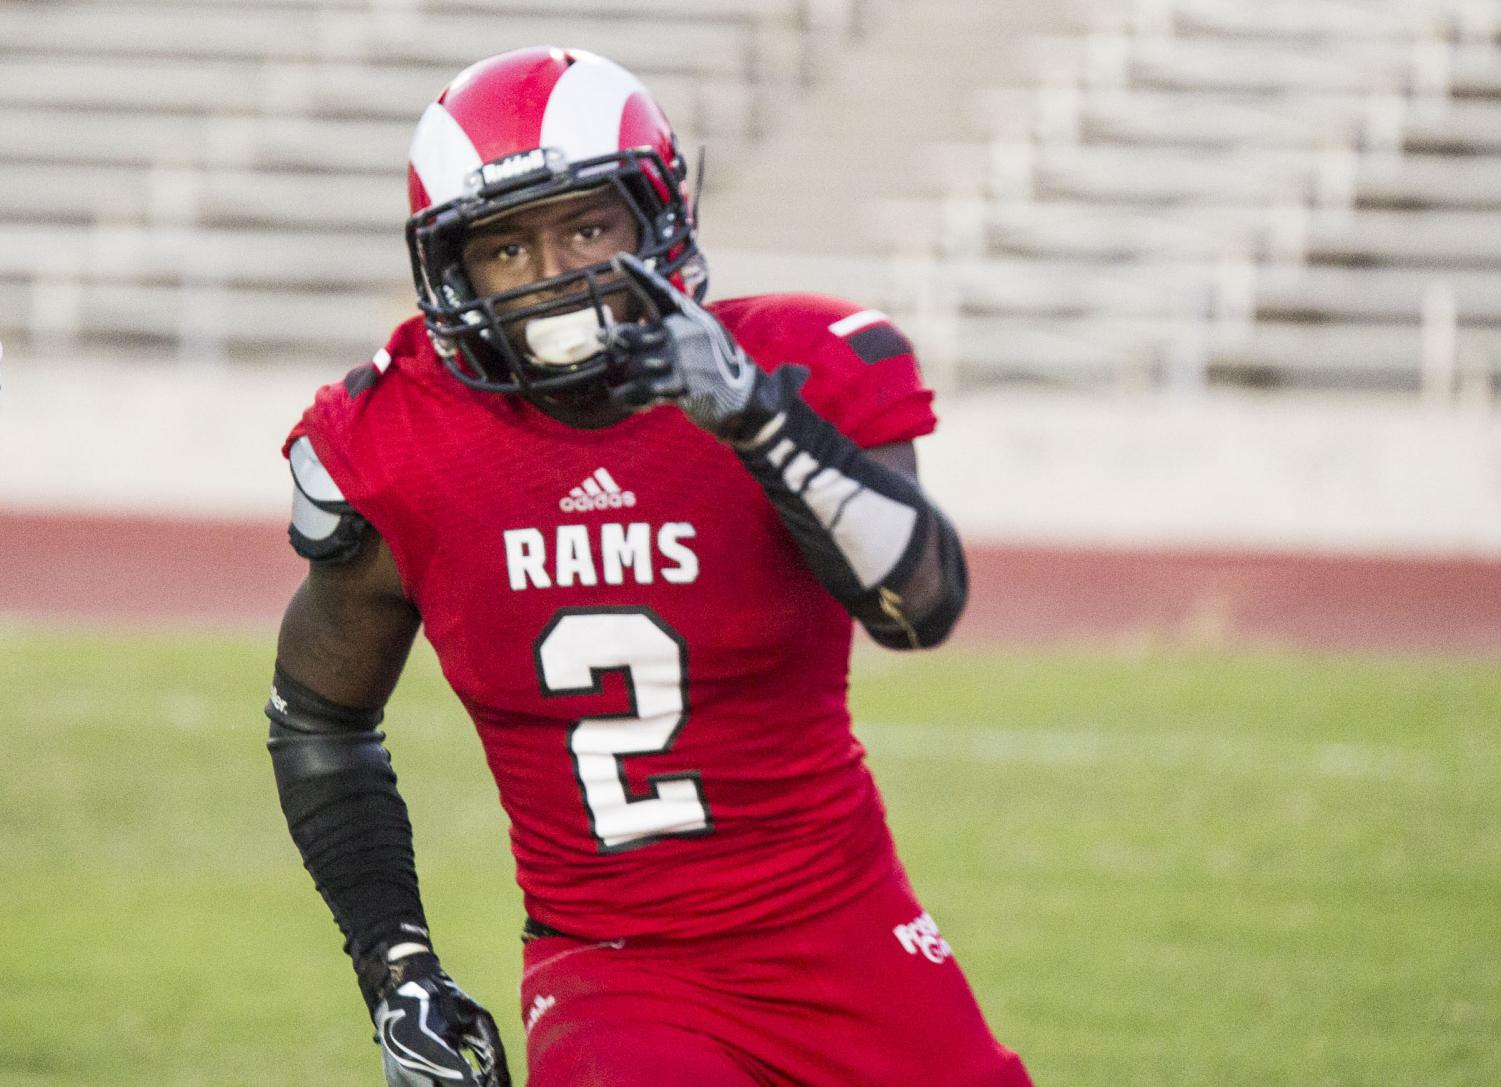 Fresno City College running back Khai Williams celebrates after scoring a touchdown during the State Center Bowl game against Butte College on Saturday, Nov. 18, 2017.